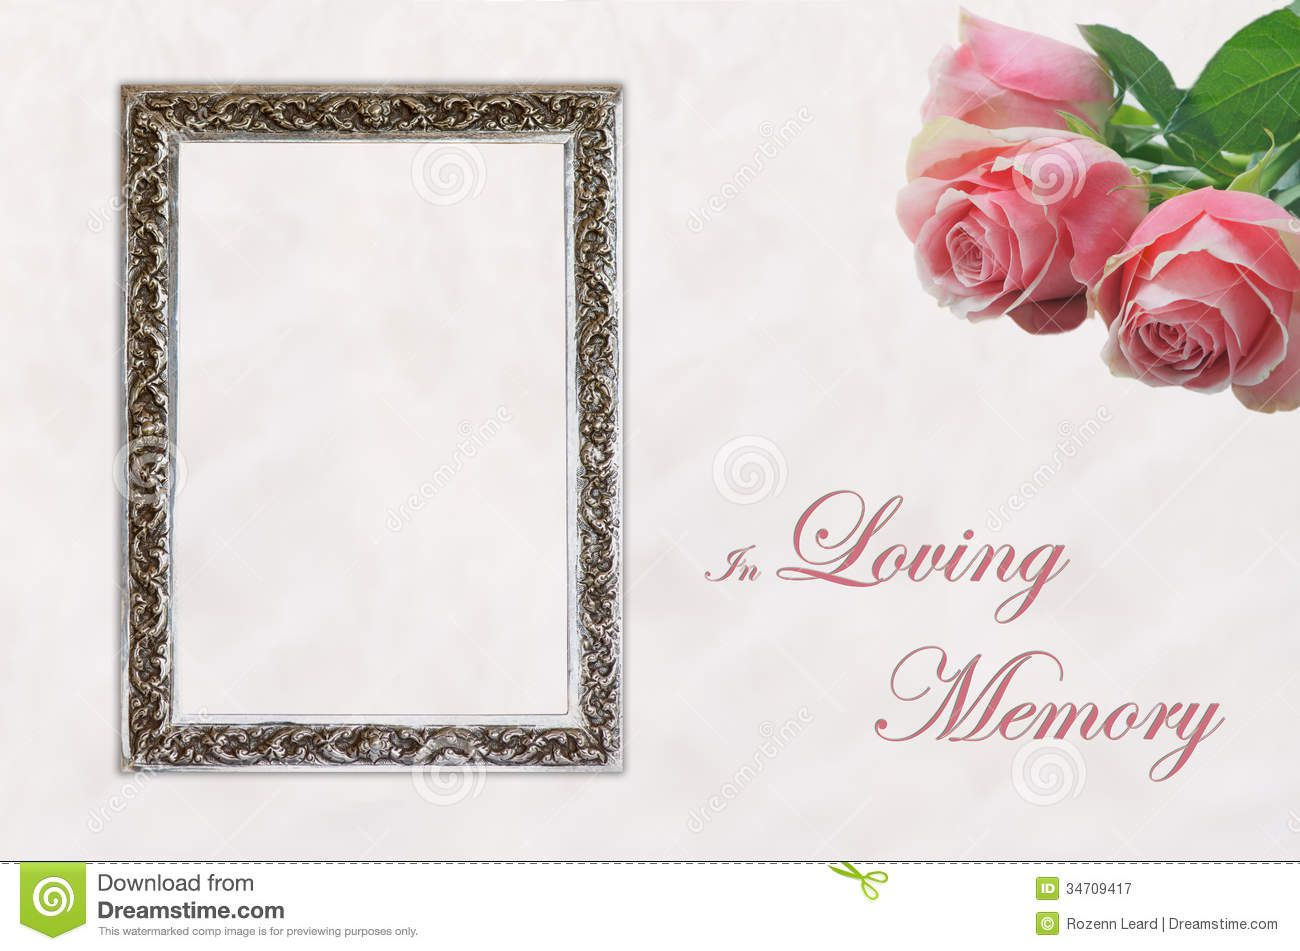 004 Dreaded In Loving Memory Template Word Concept Full